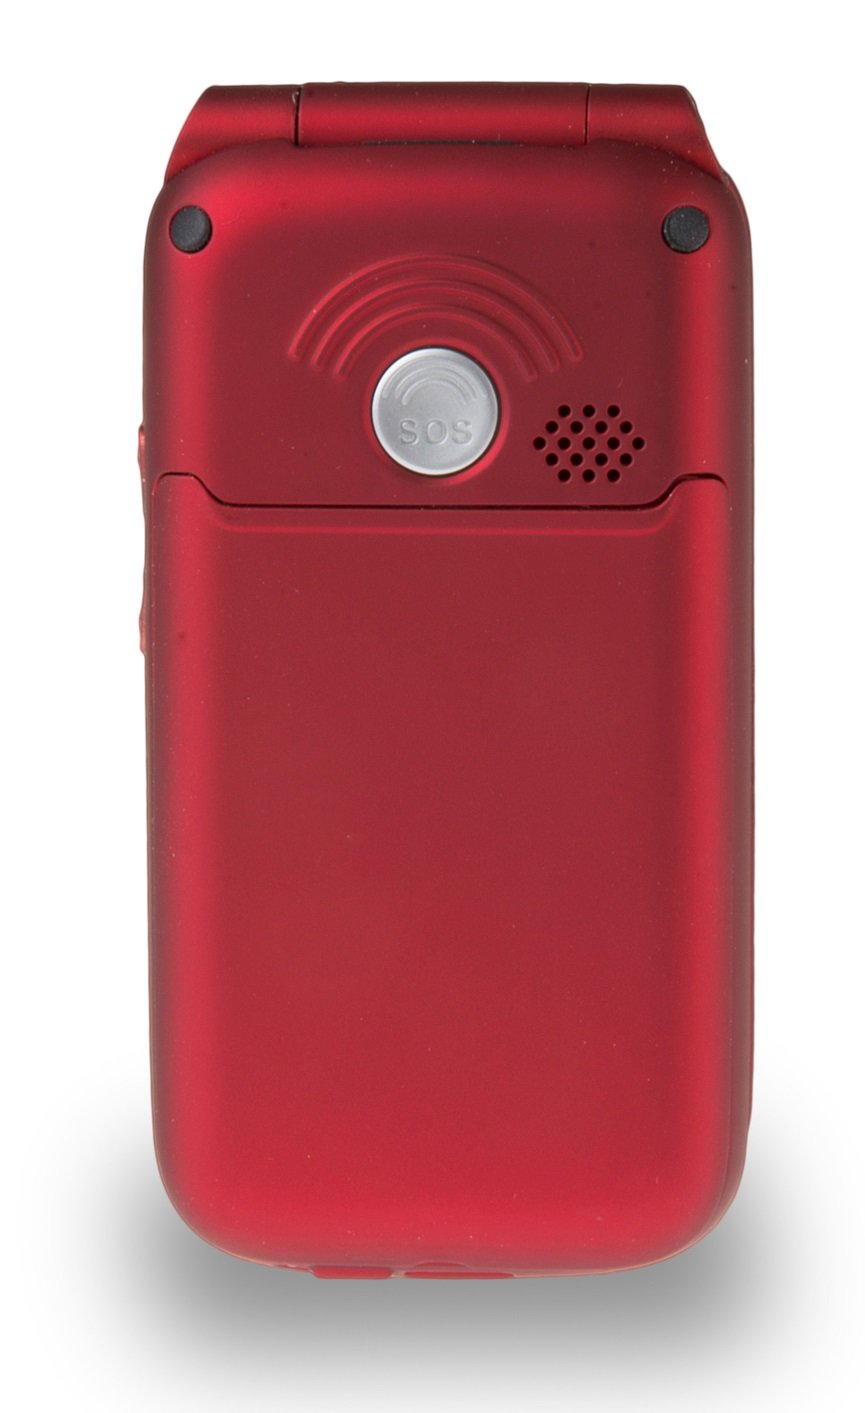 TT700 RED Big Button Flip Mobile Phone Easy to Use Simple Unlocked